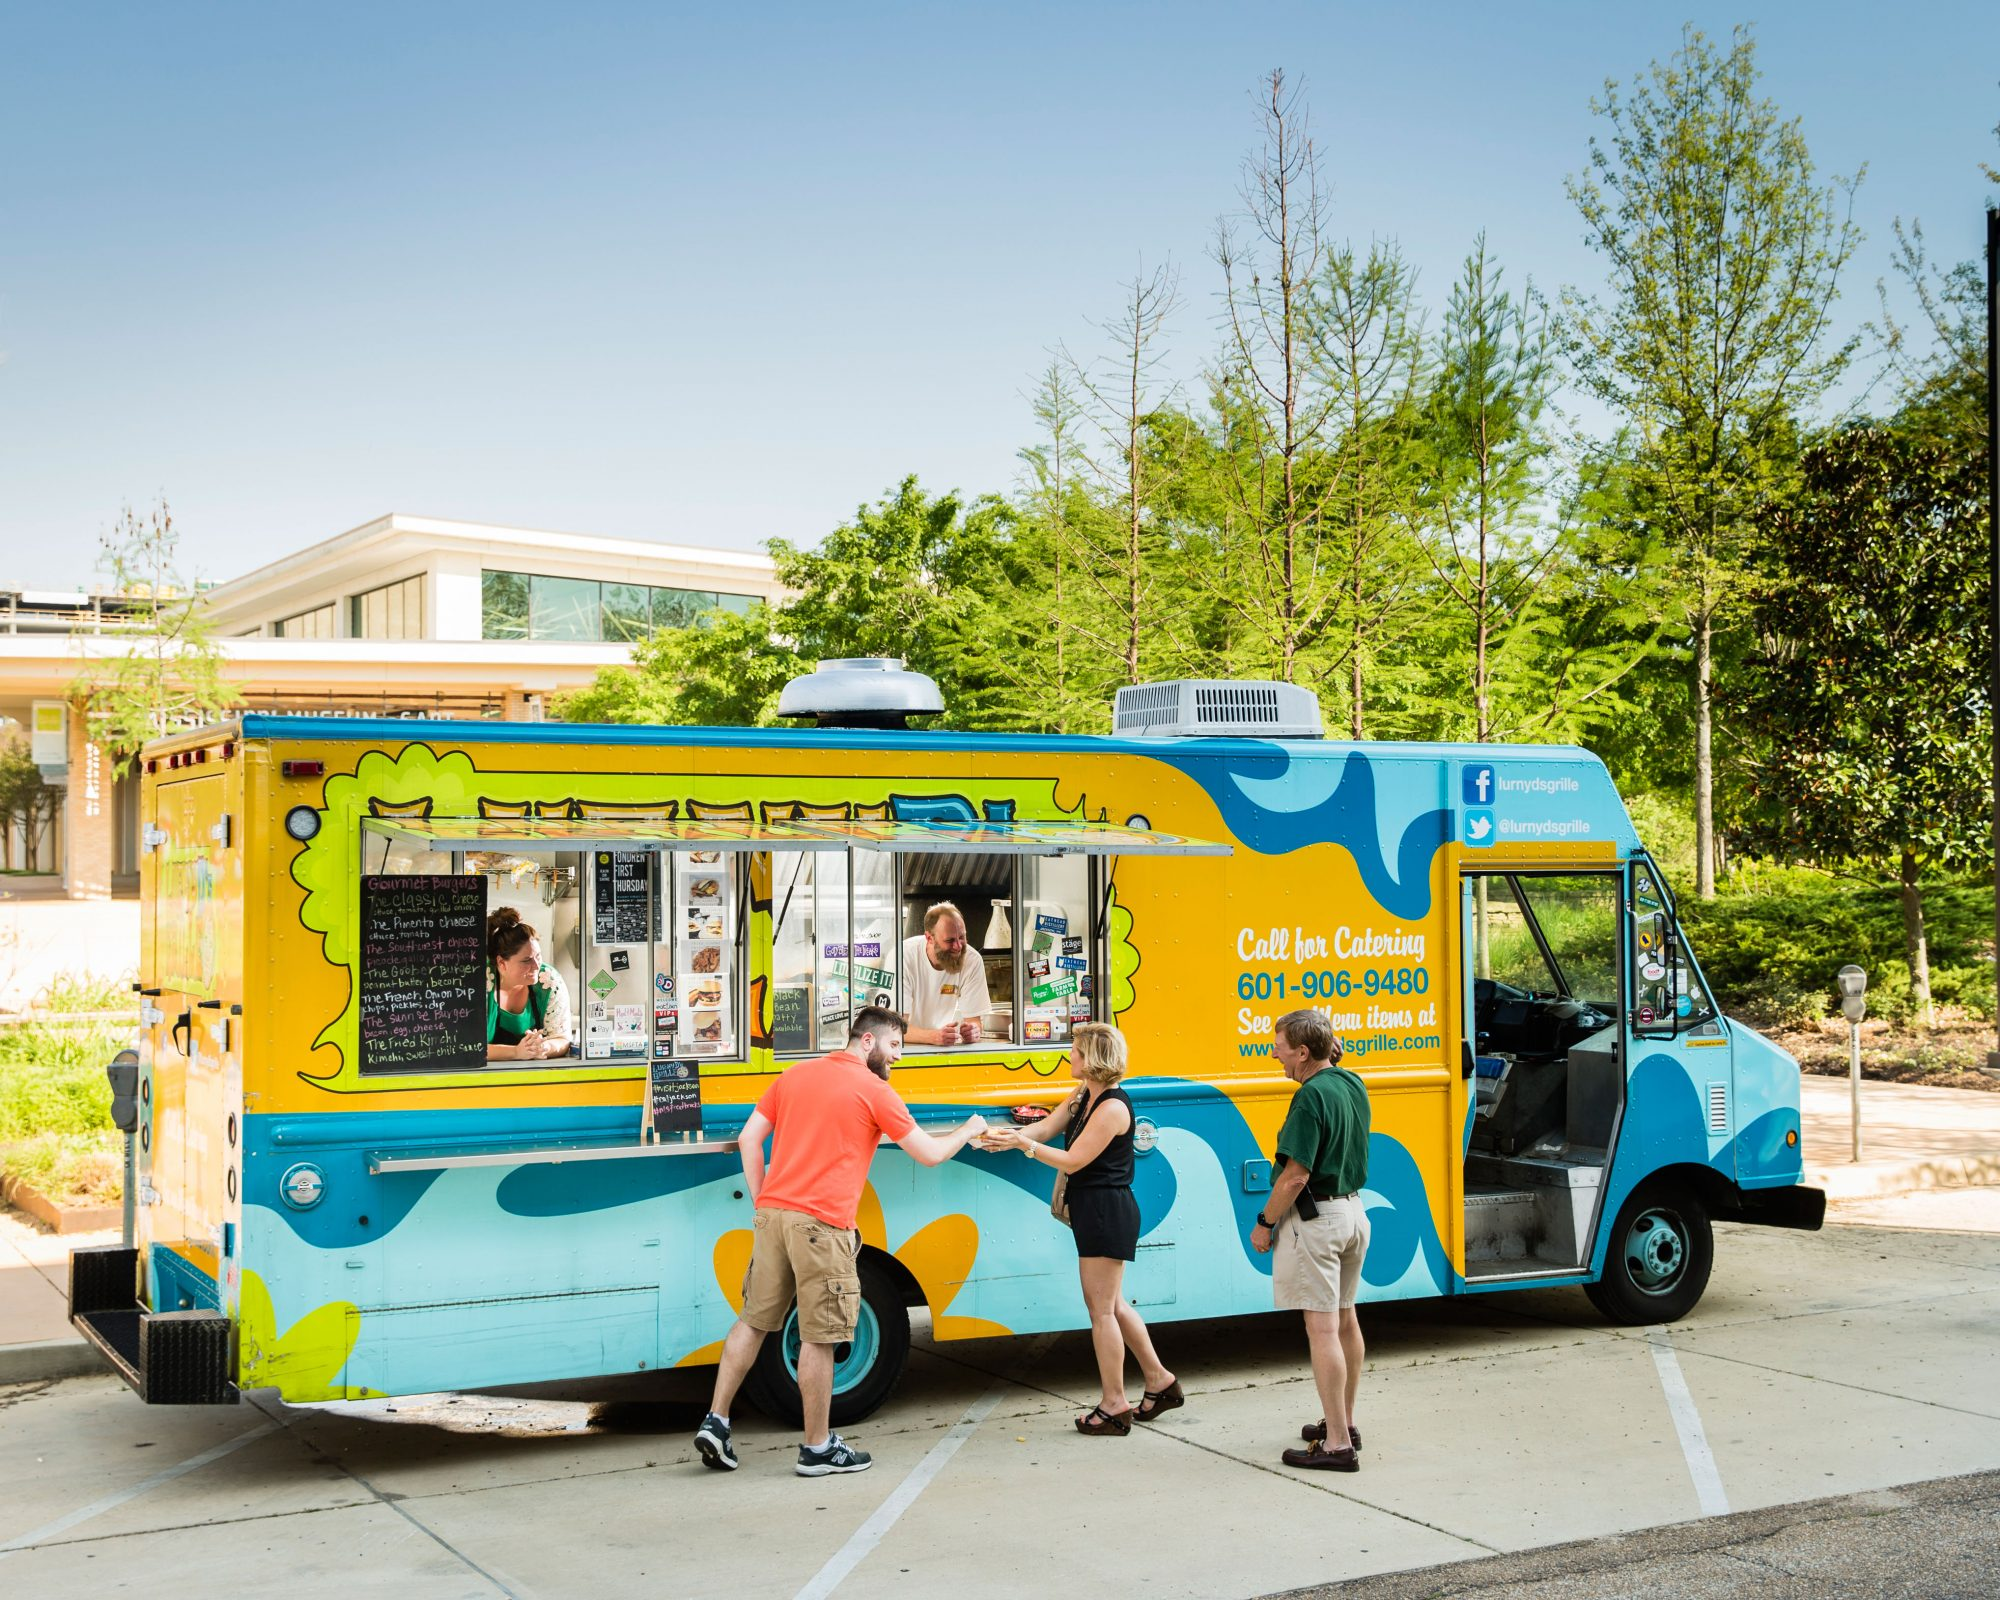 LurnyD's Grille Food Truck